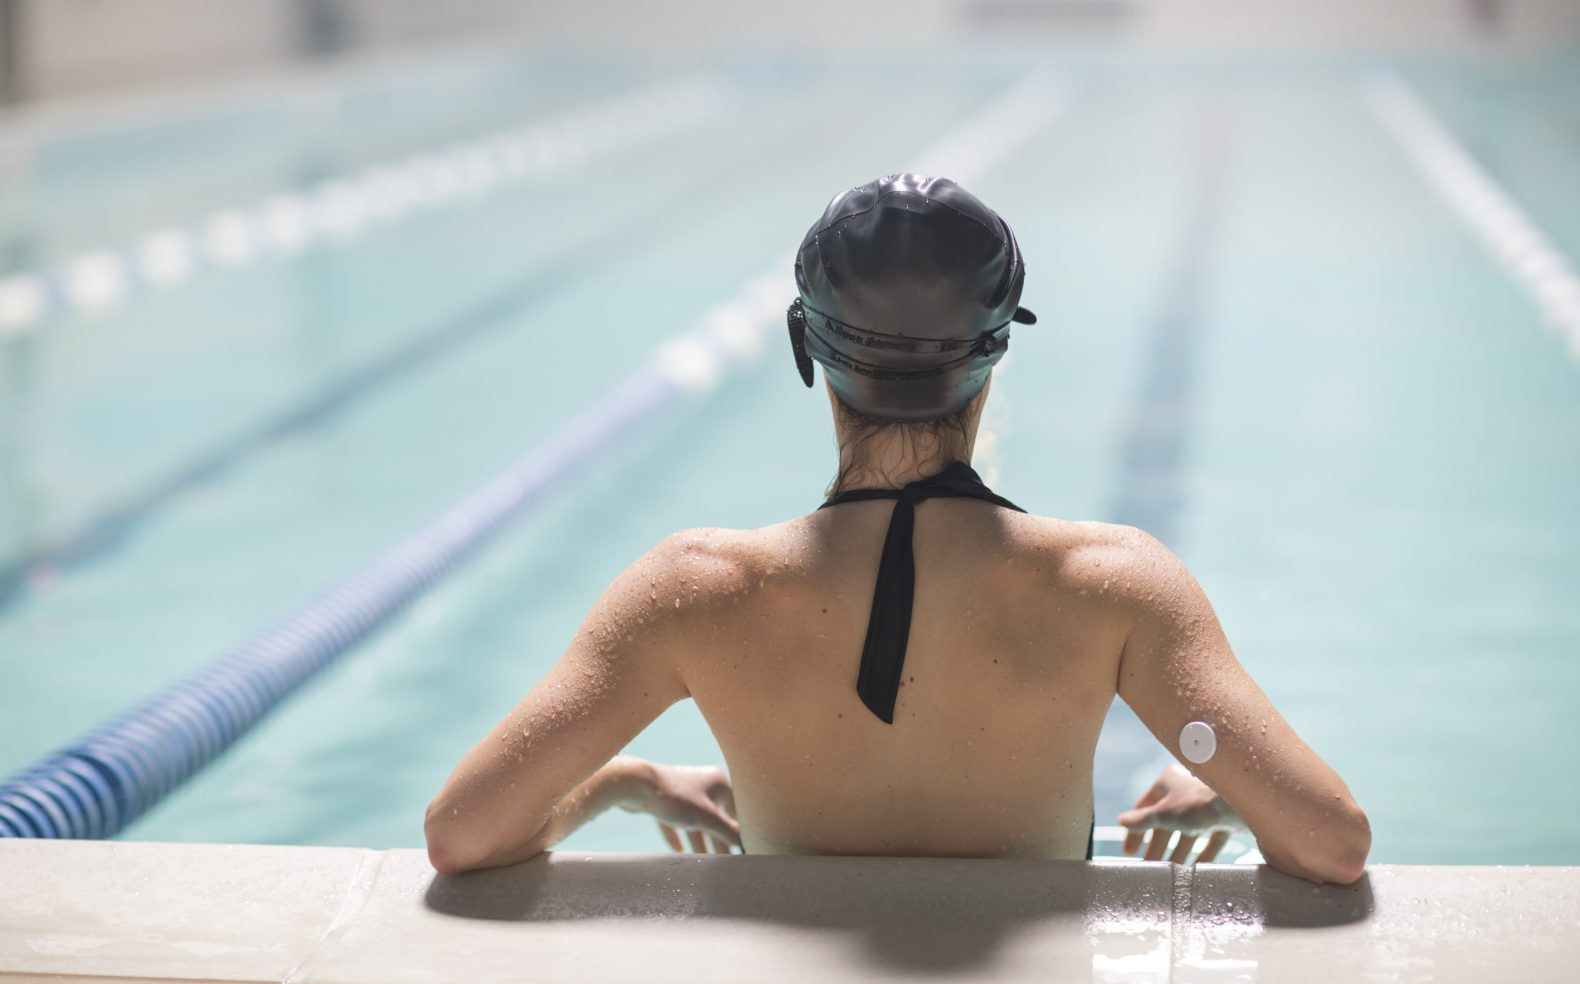 A swimmer in a pool with elbows propped up on the concrete edge facing swimming lanes and wearing a medical patch on her arm.